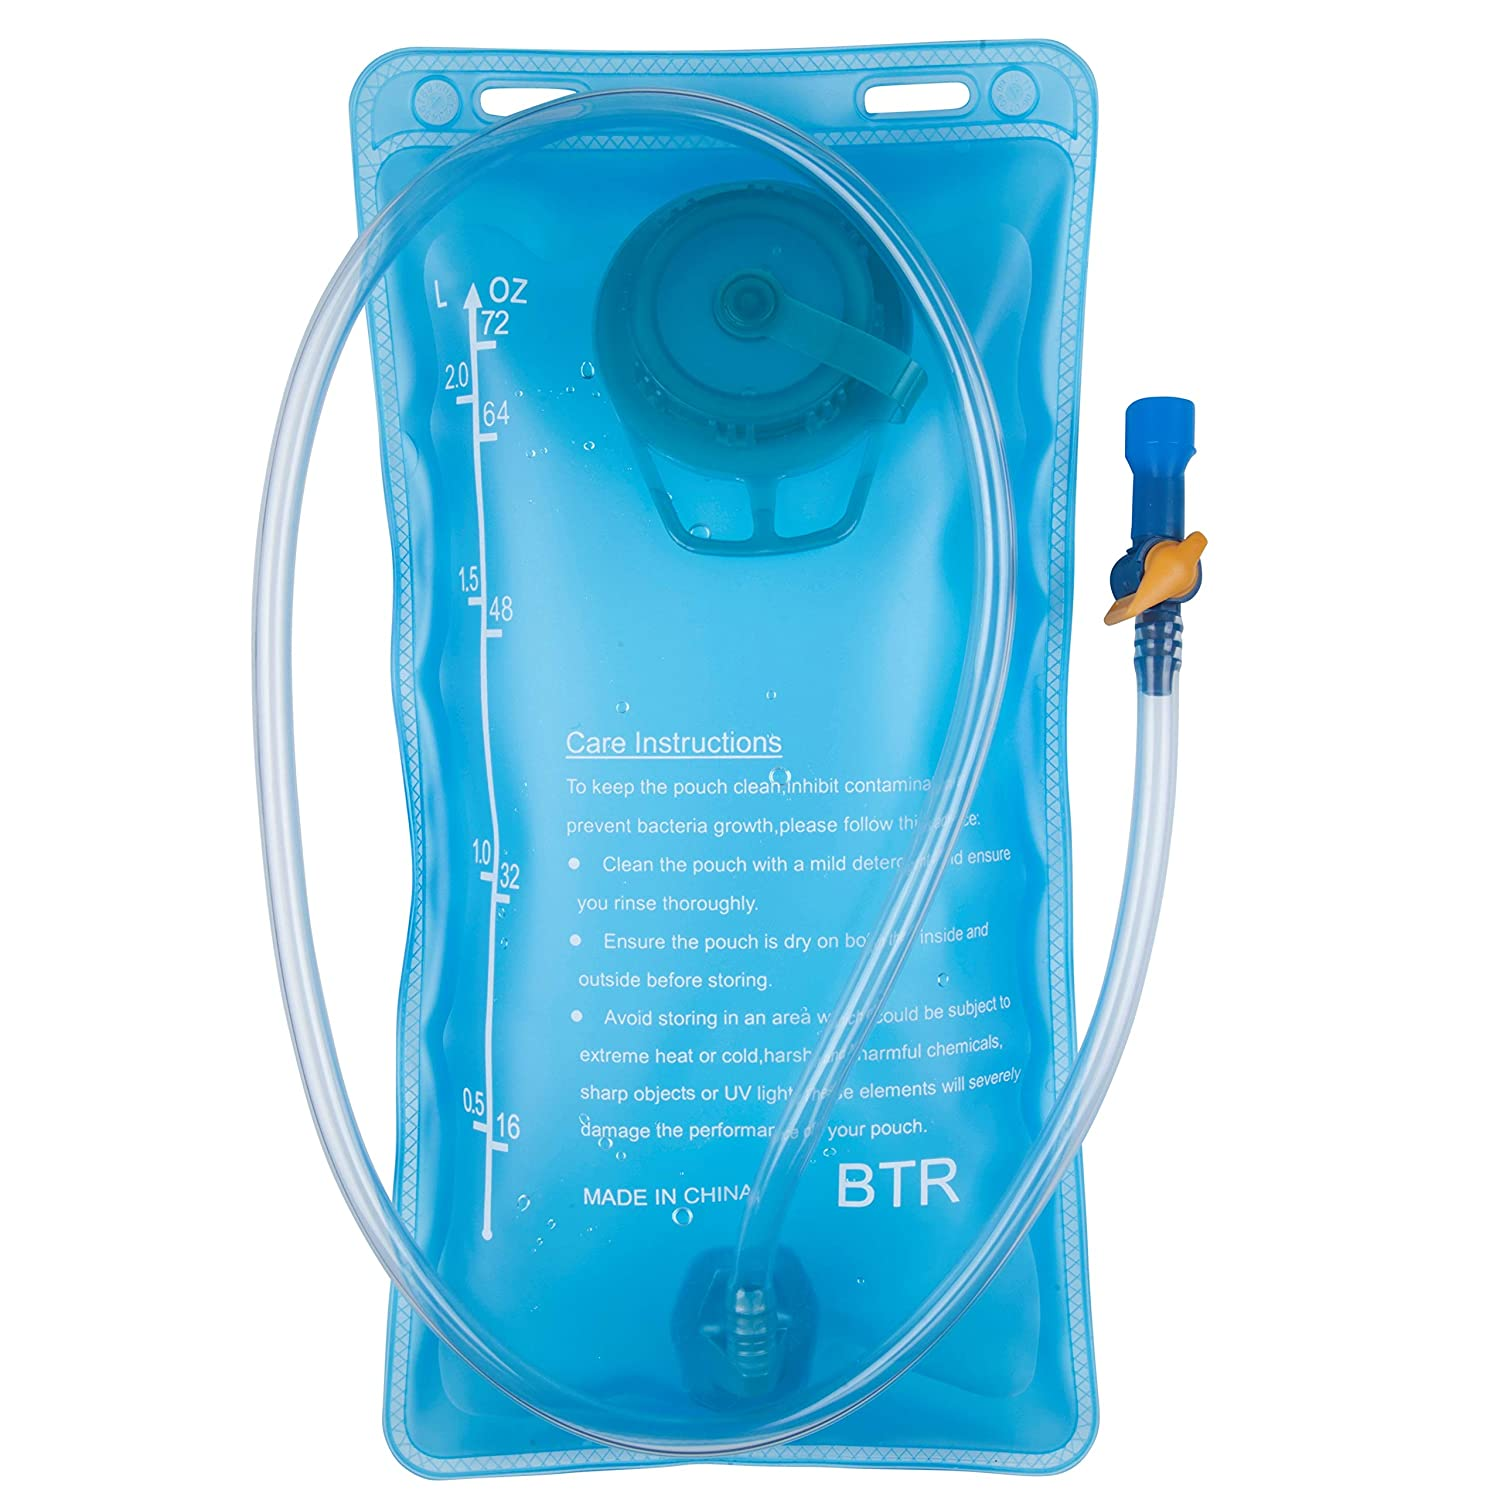 94772427f5 BTR Hydration Bladder Water Bag Compatible With Any Hydration Pack and  Backpack.  Amazon.co.uk  Sports   Outdoors